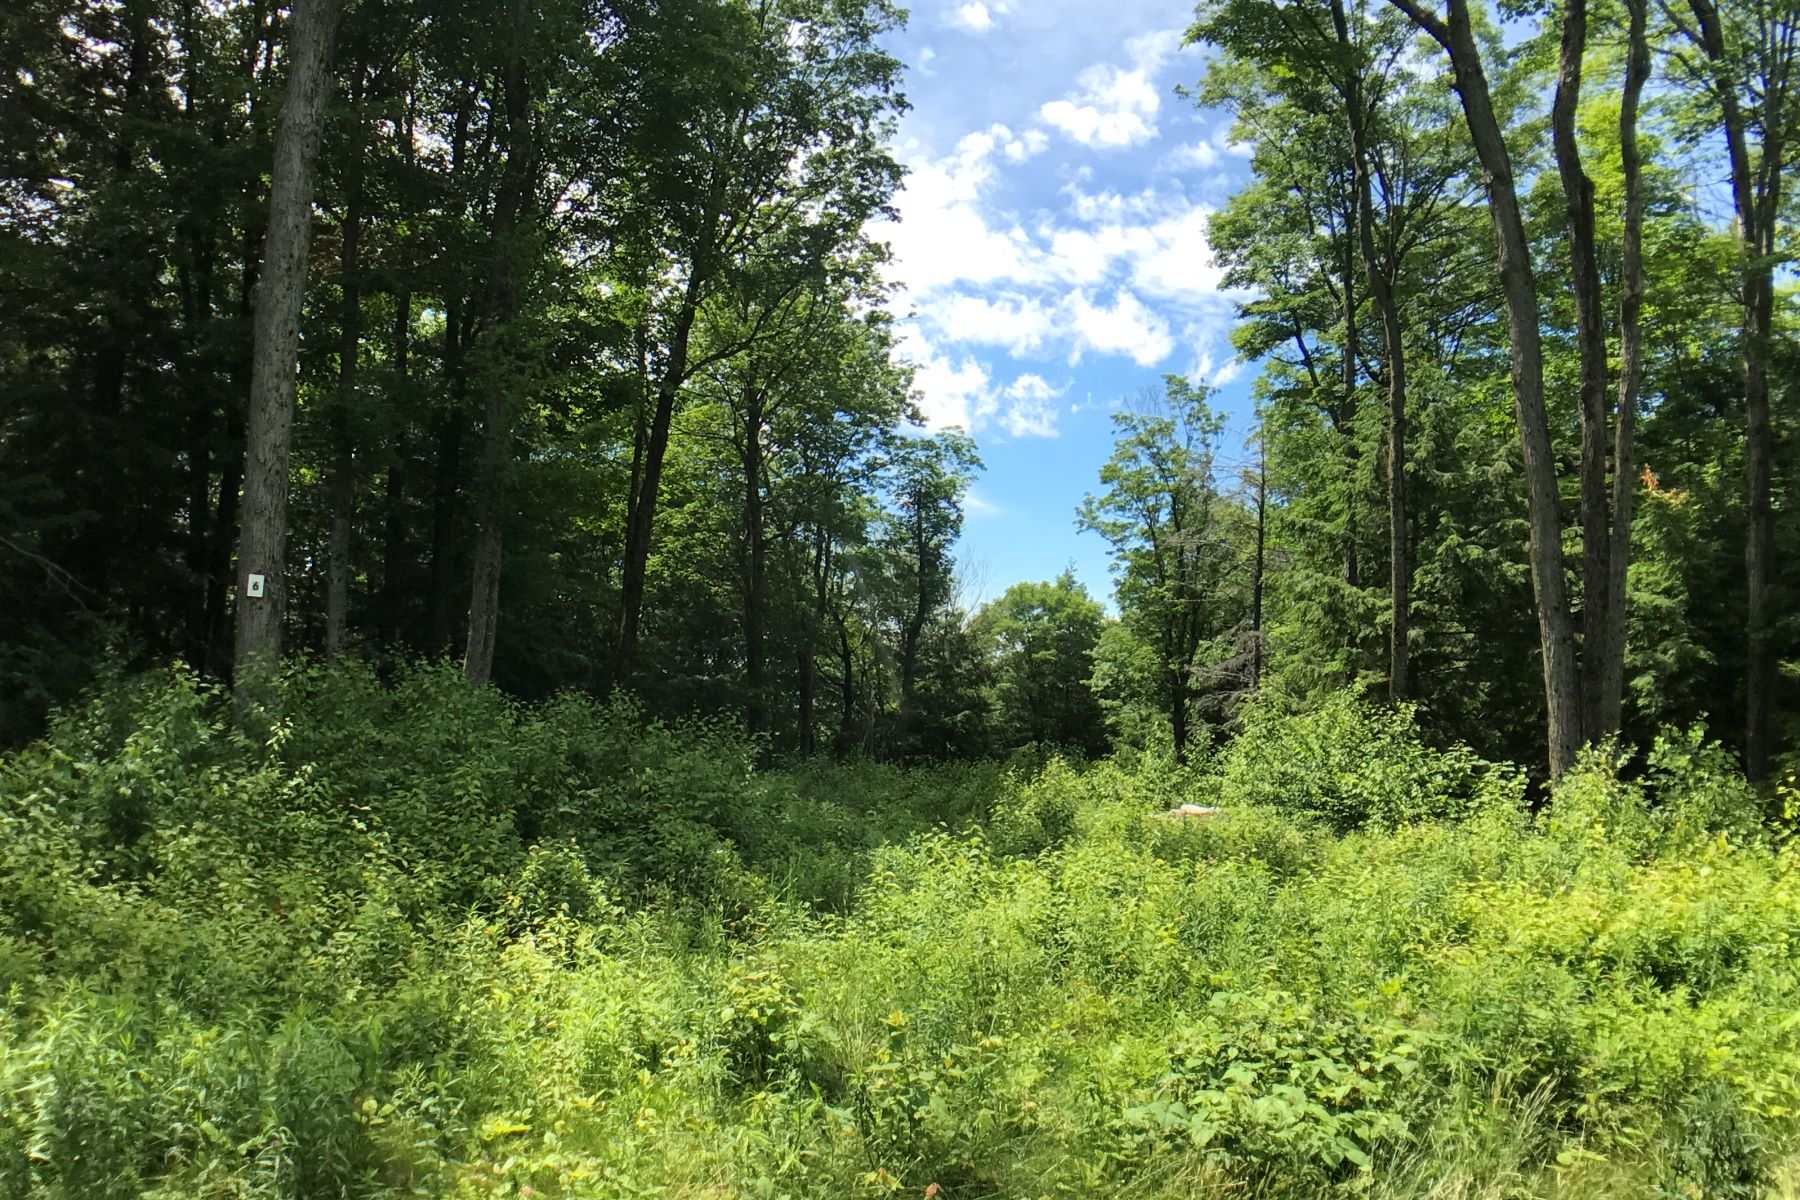 Terrain pour l Vente à Affordable Ready-to-Build Parcel with Shared Waterfront Access Lot #6, Moose Dr Lee, Massachusetts 01238 États-Unis